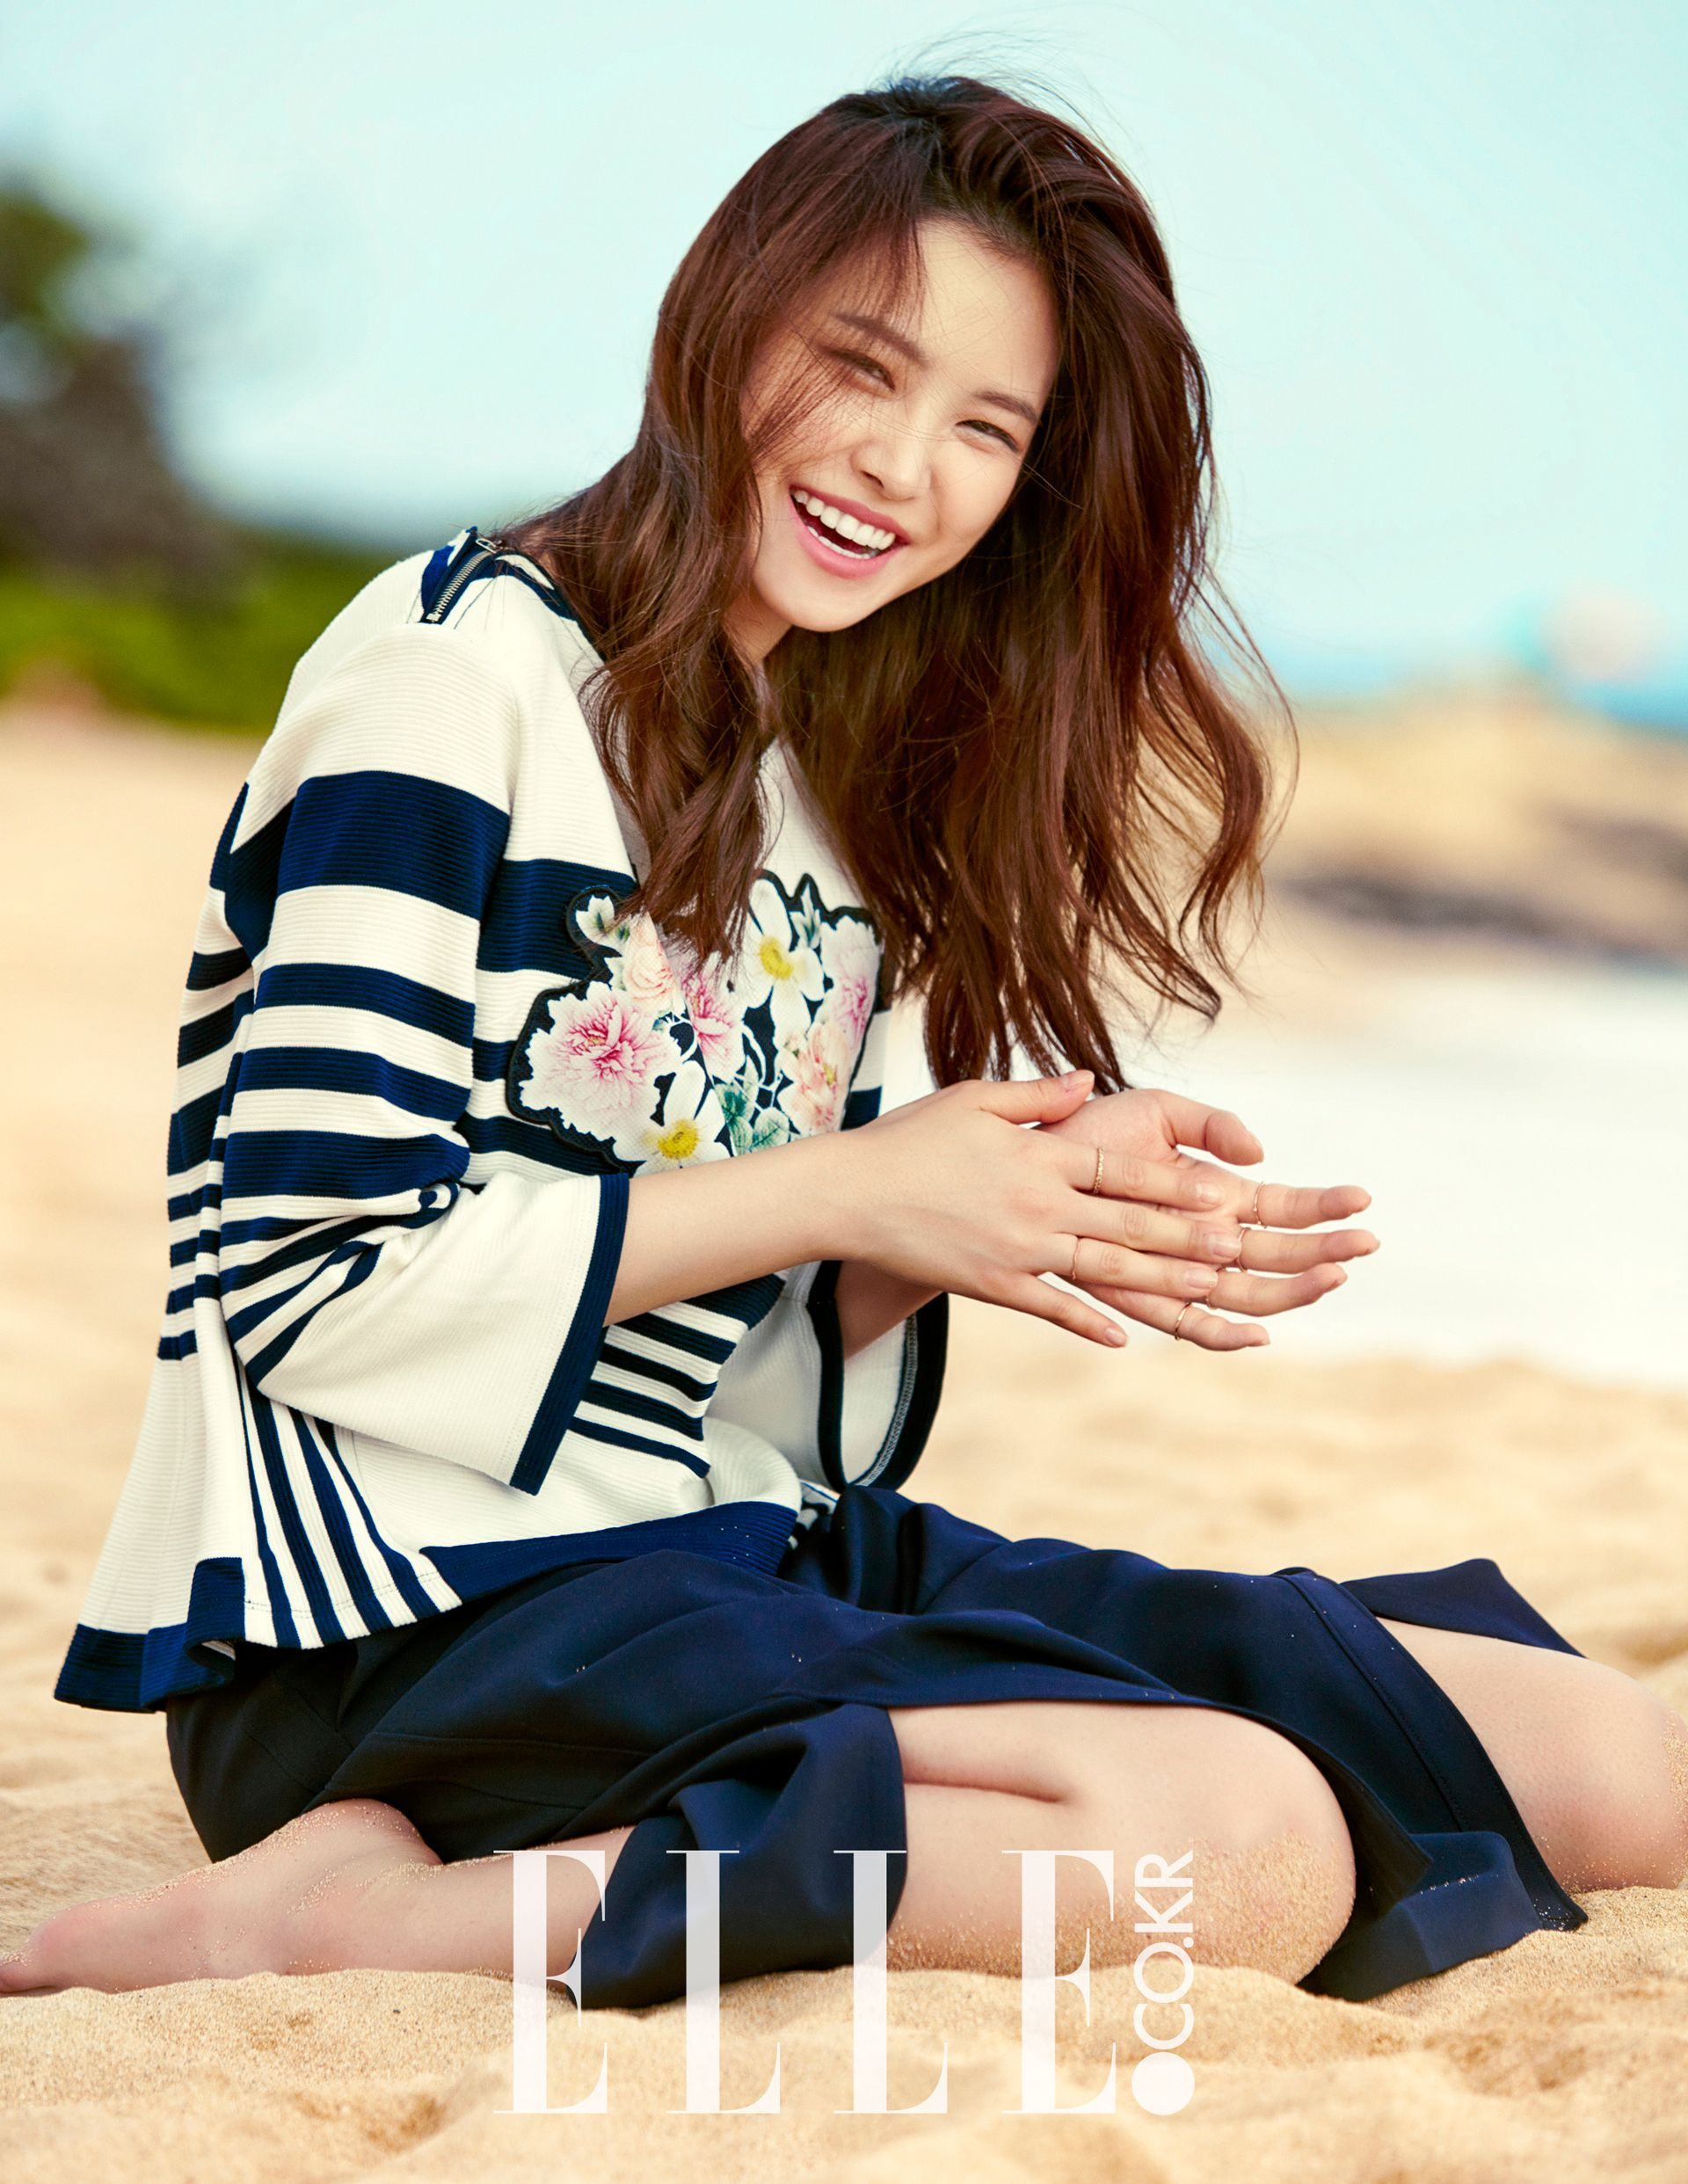 Apink's+Naeun+Takes+Part+in+Photoshoot+in+Hawaii+For+'ELLE'+Magazine+(March+2016)